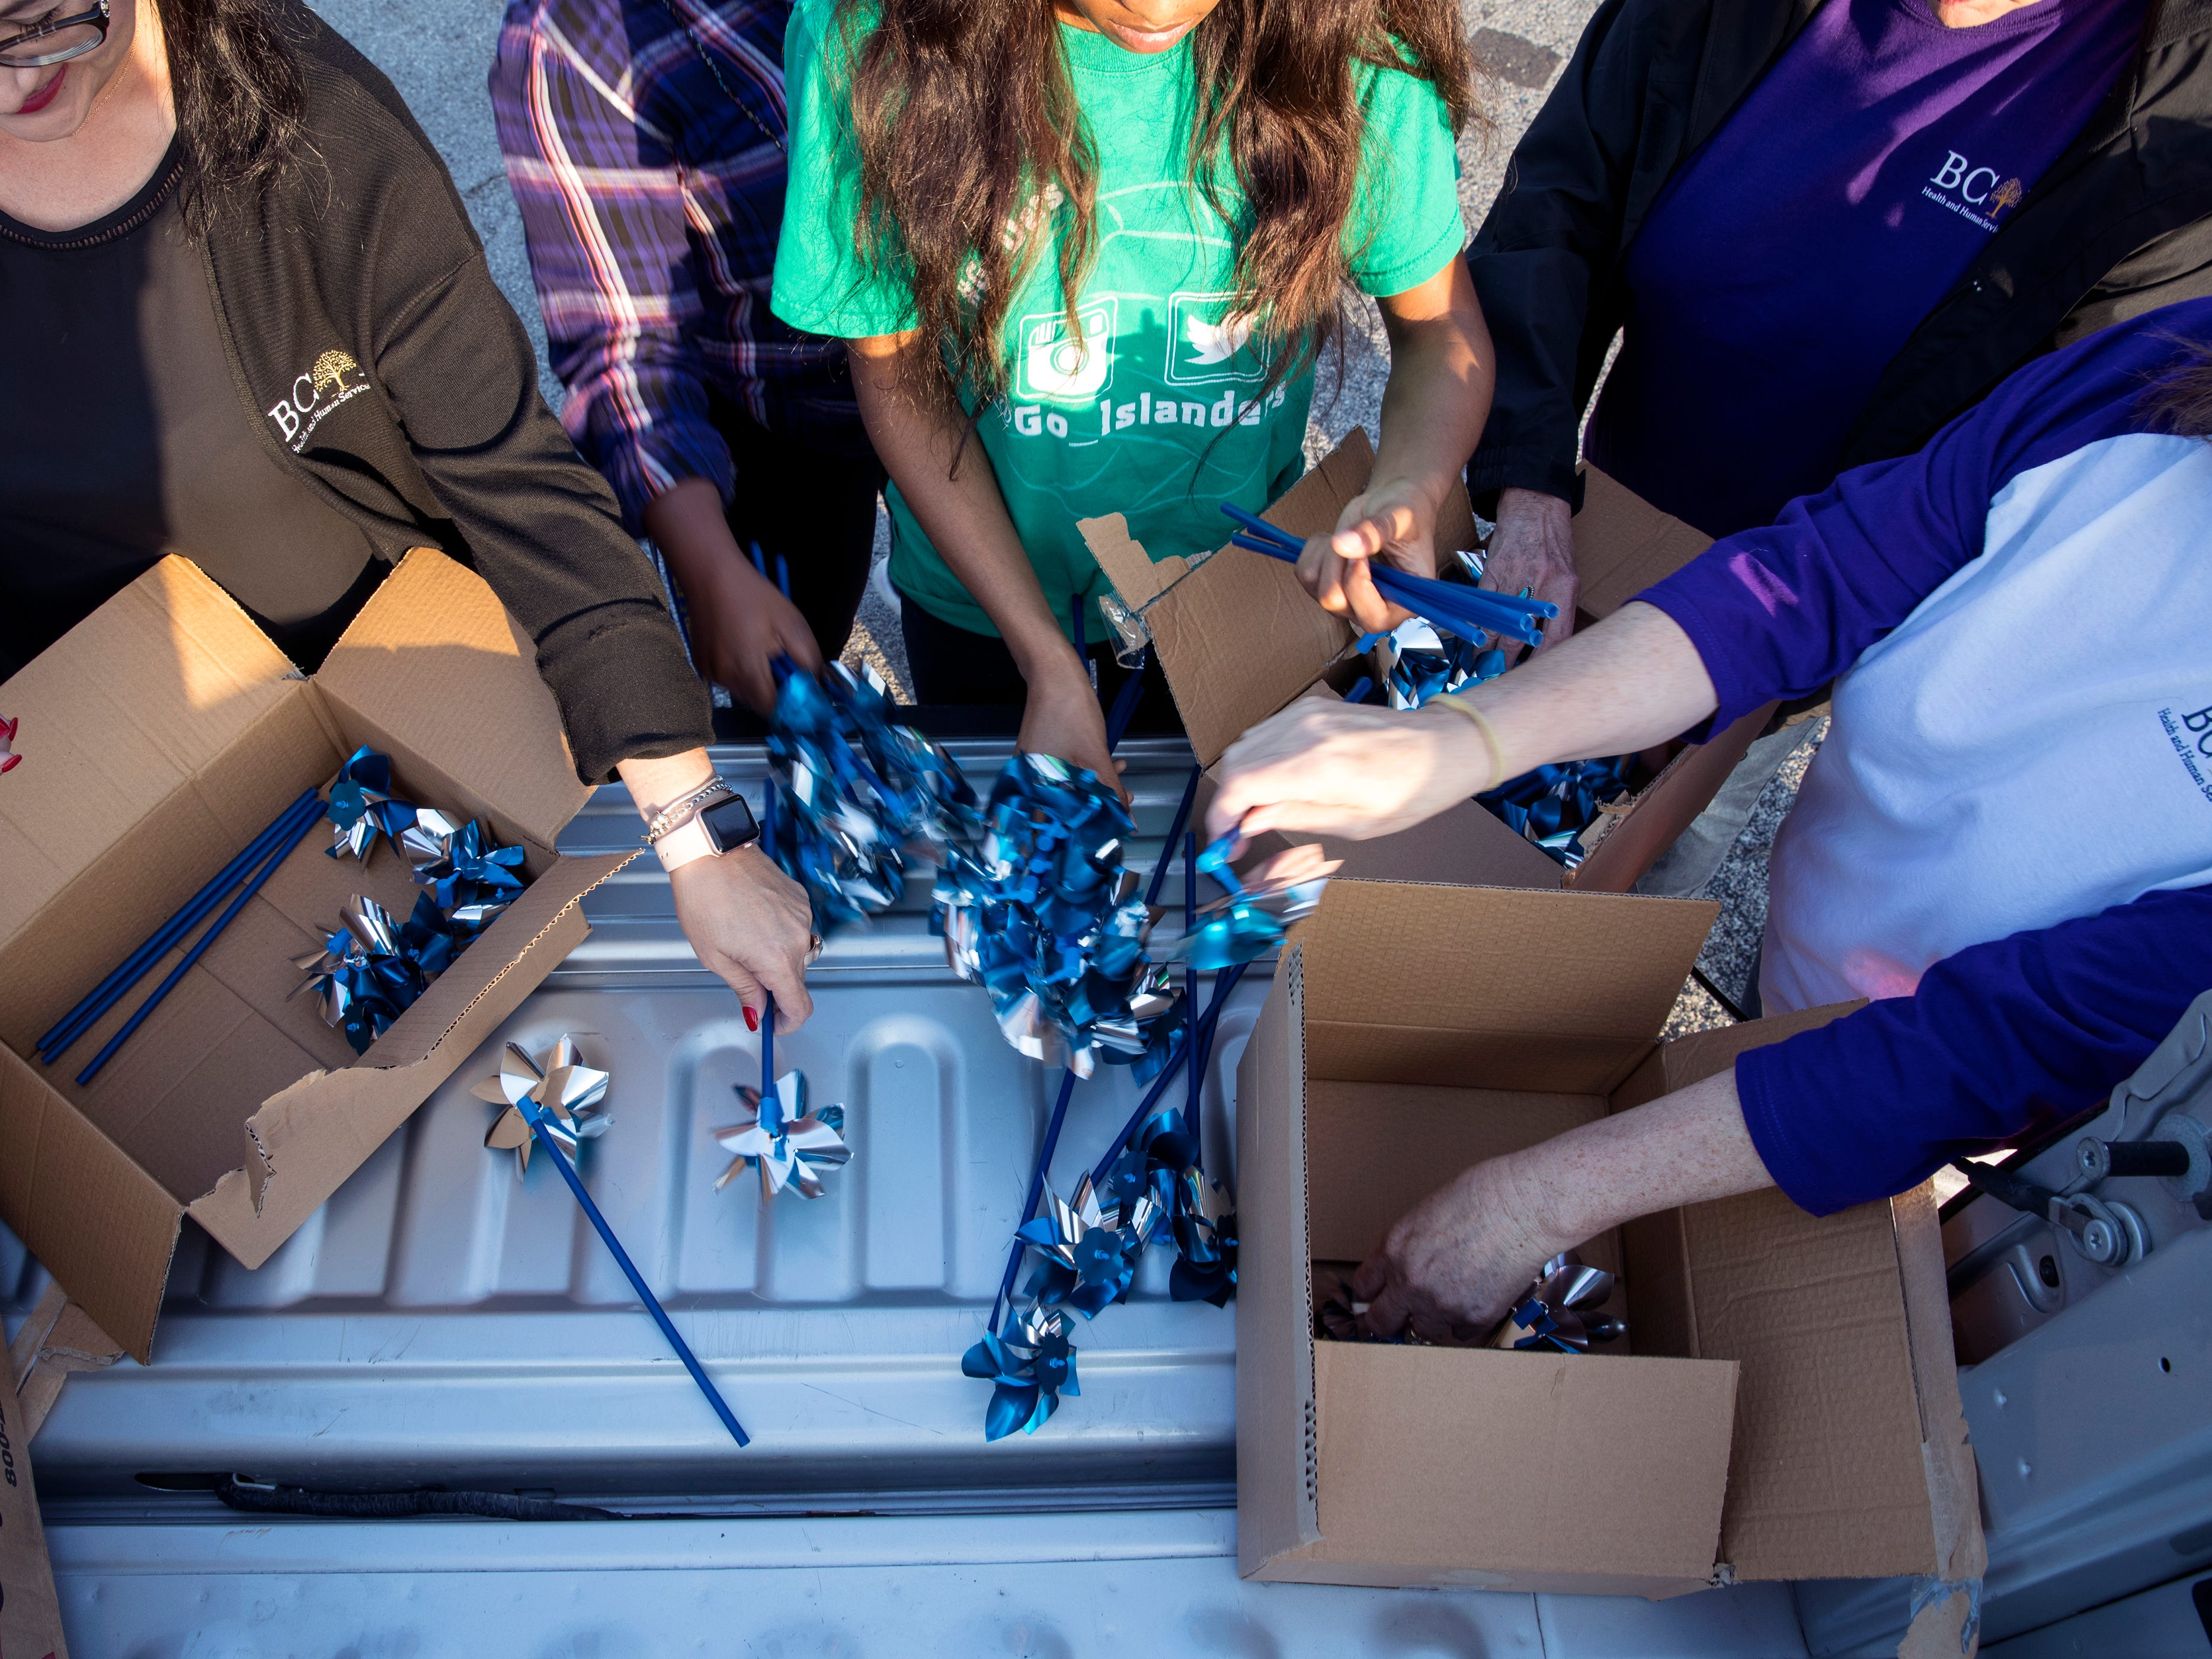 Marissa Cano (left) and others assemble pinwheels to be installed in front of CASA of the Coastal Bend on Friday, March 29, 2019. The 1,066 pinwheels represent a child from the Coastal Bend who was in foster care last year and will stay up throughout the month of April, which is Child Abuse Awareness Month.